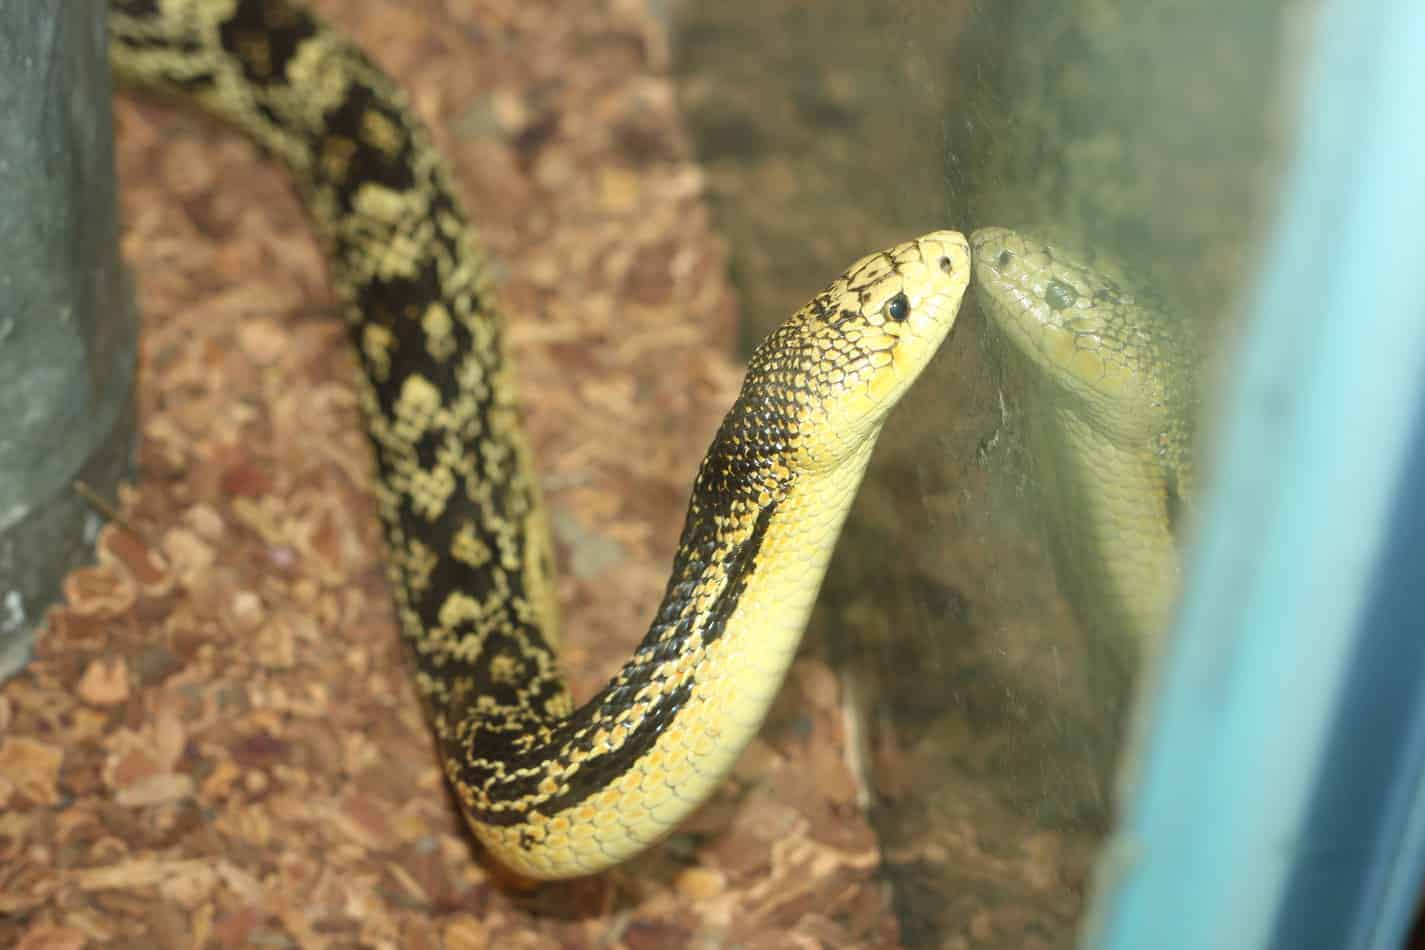 Will Pet Snakes in Your Home Make the Place Smell Bad?